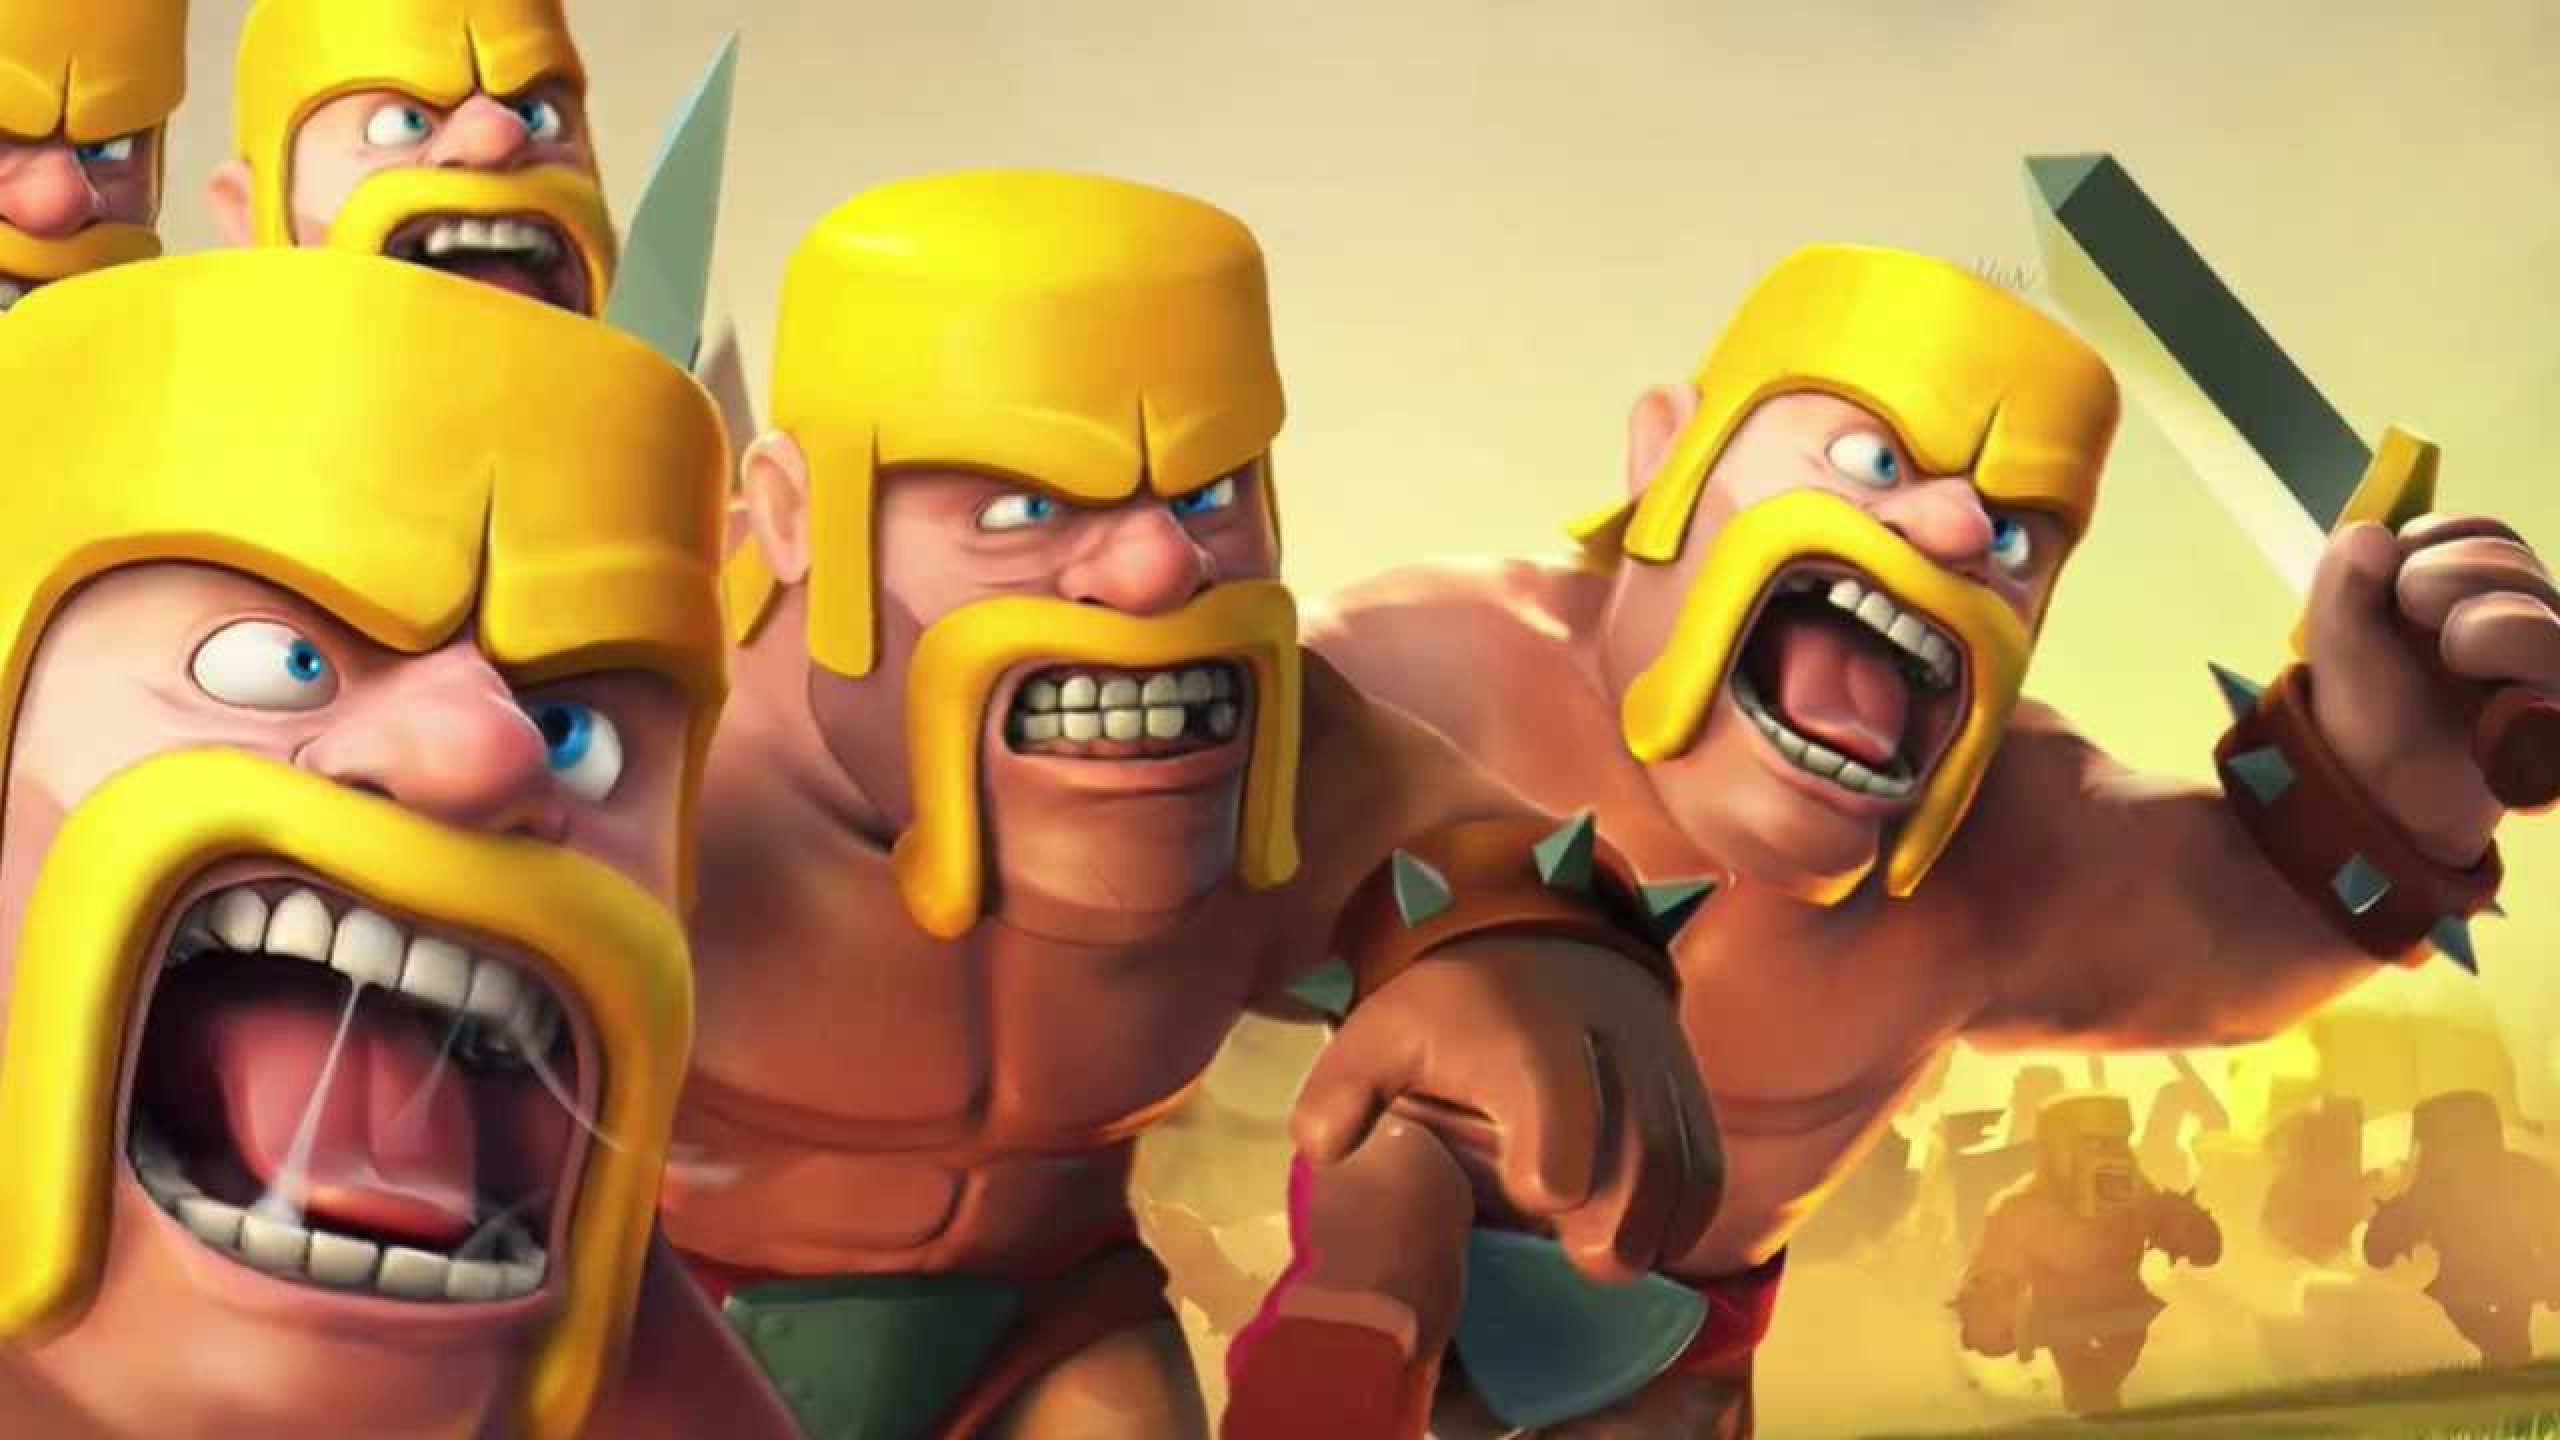 Clash Of Clans Images wallpapers 50 Wallpapers Art 2560x1440